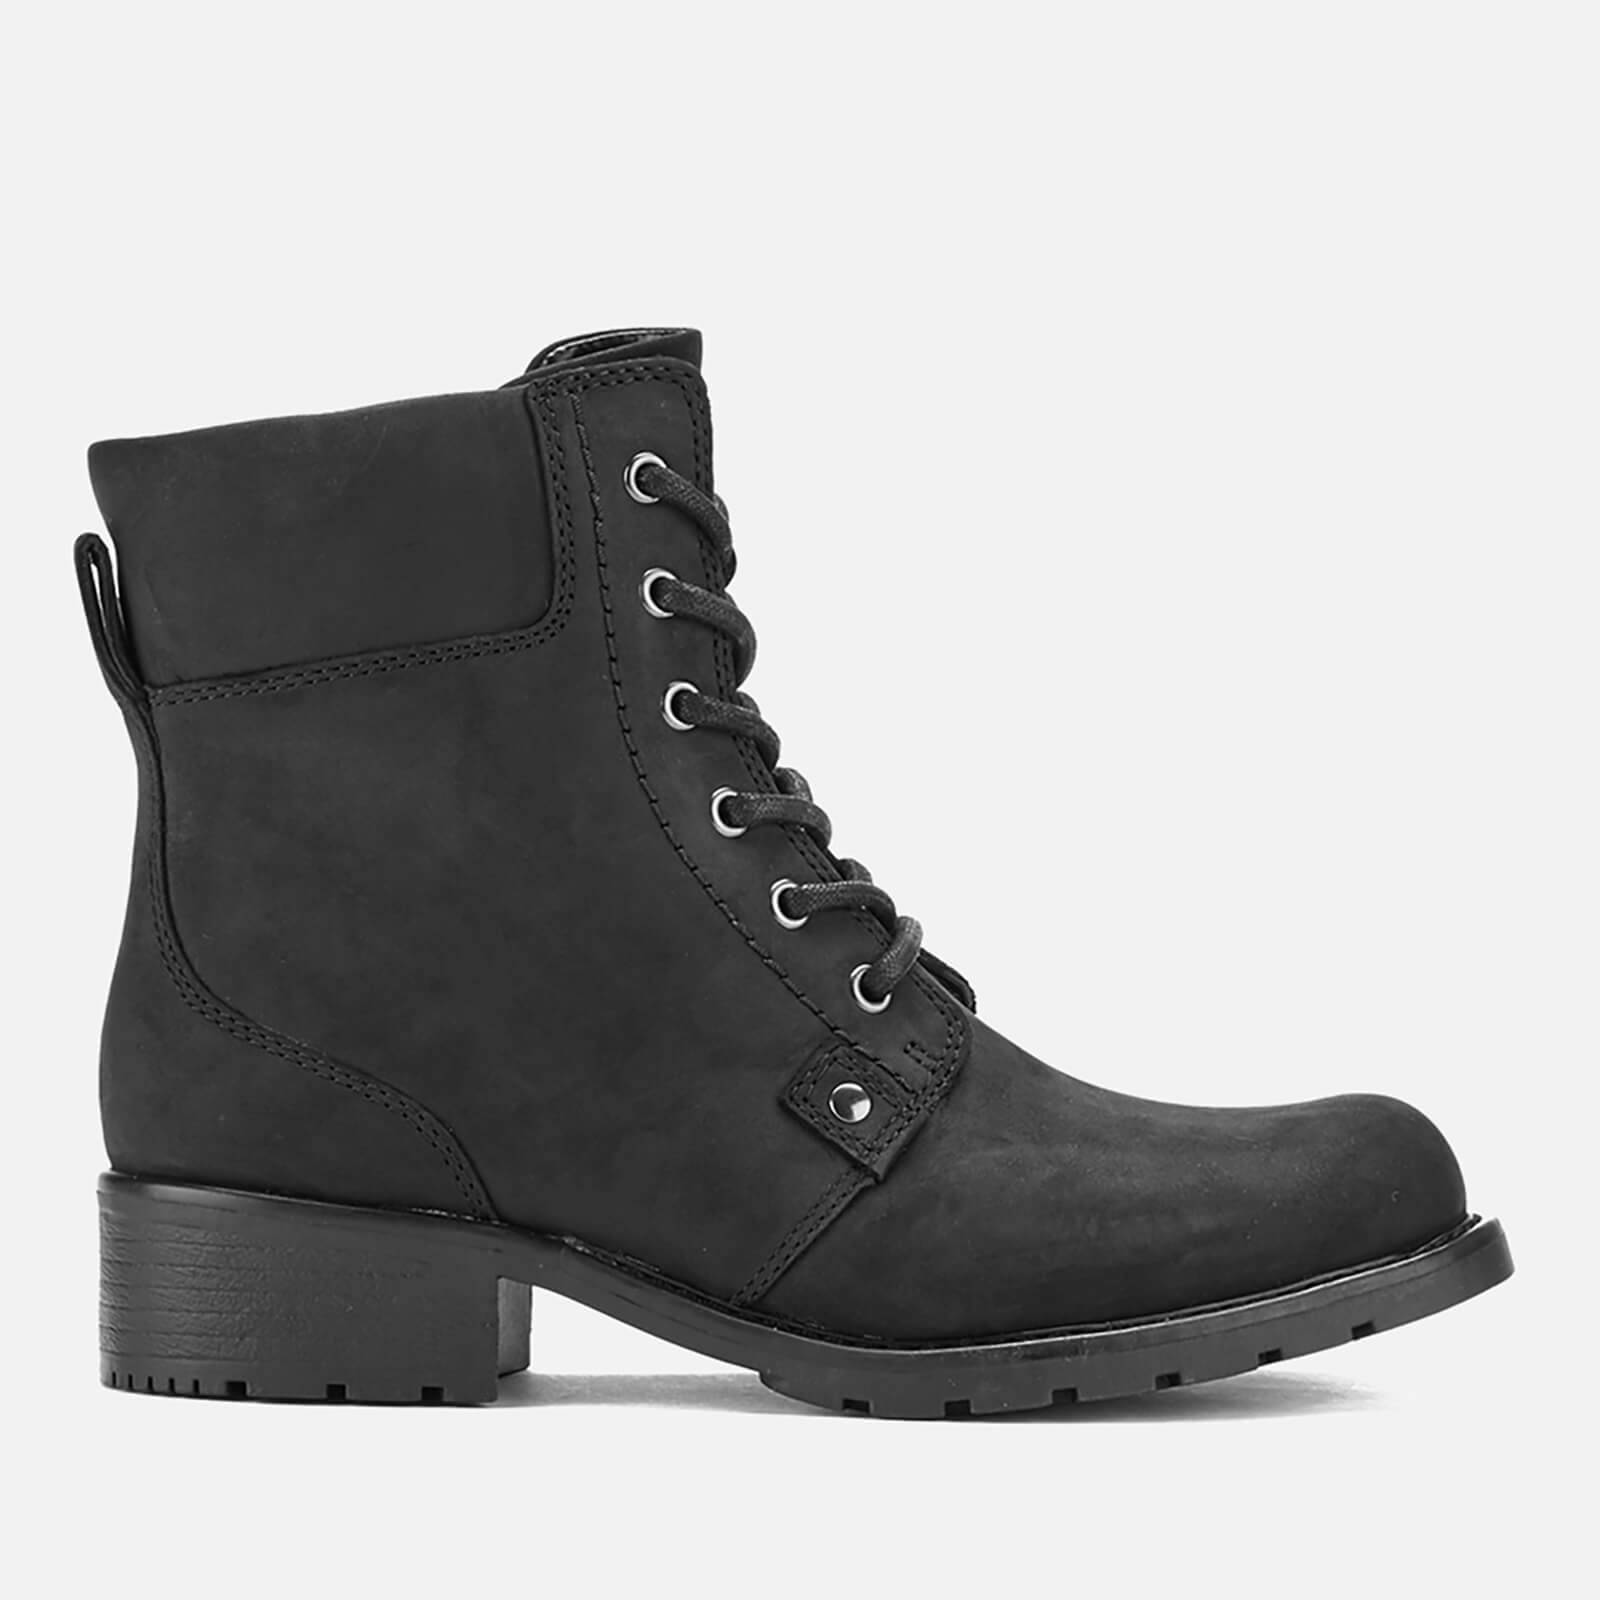 Clarks Women's Orinoco Spice Leather Lace Up Boots - Black - UK 5